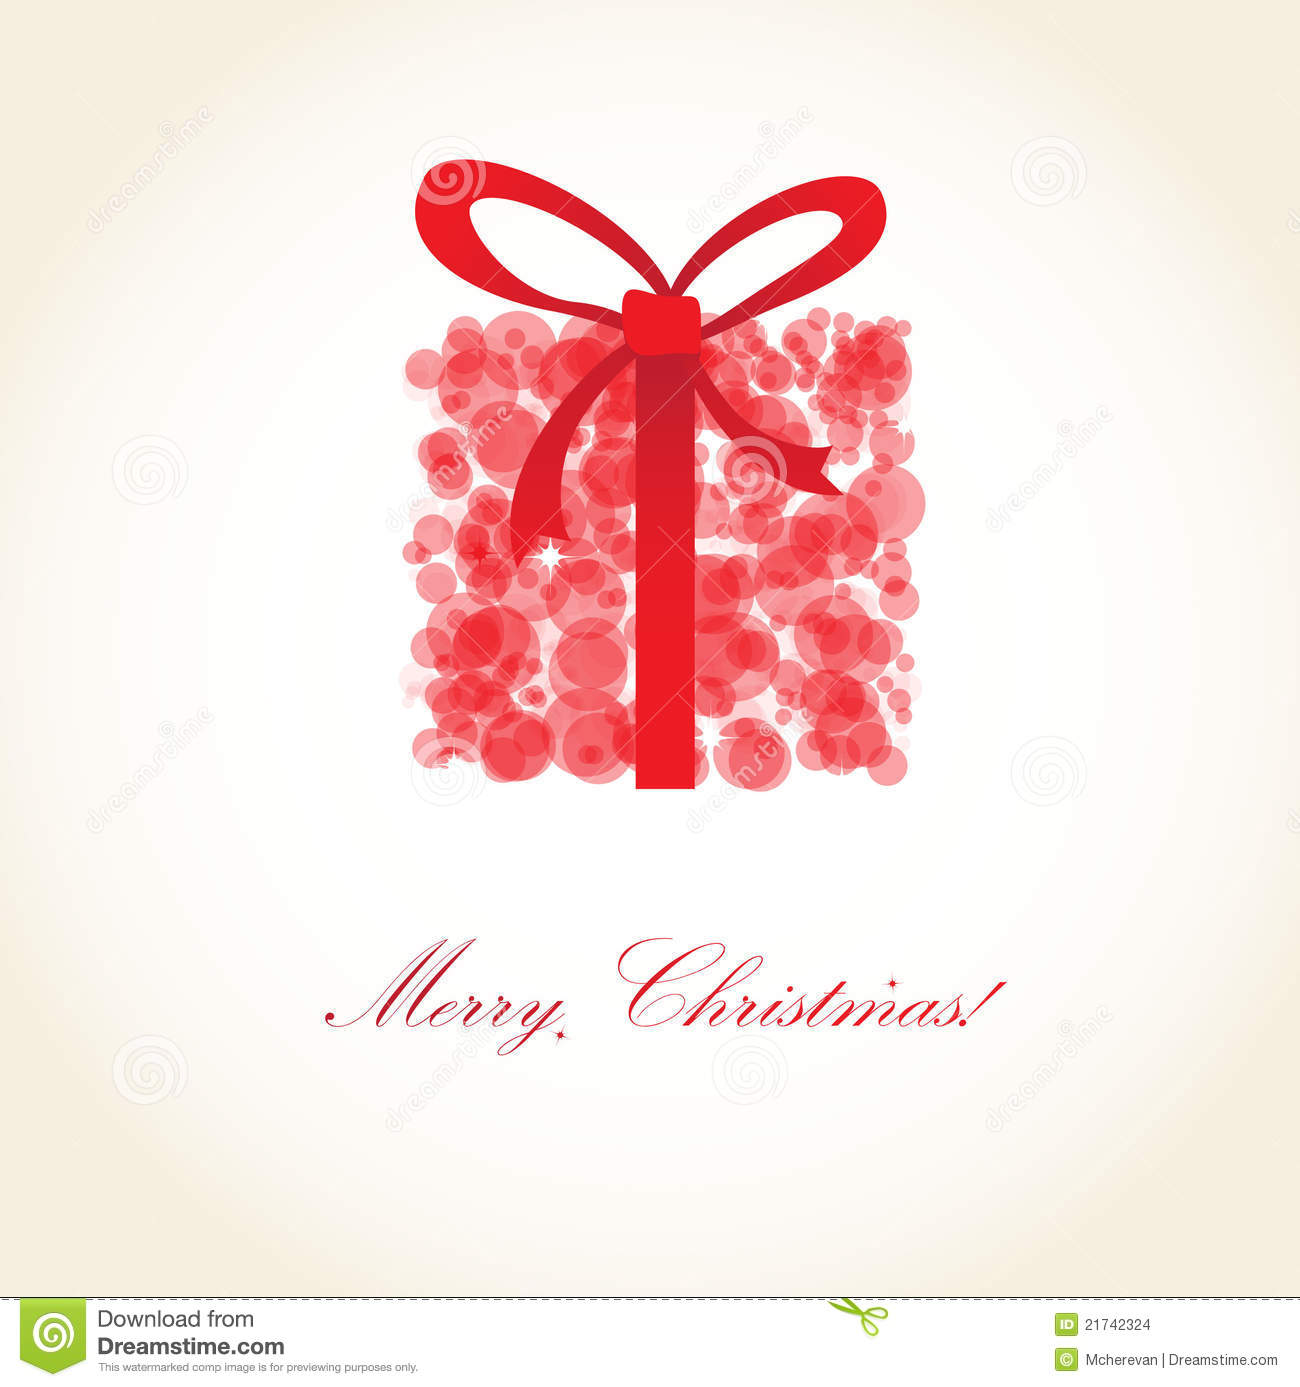 Greeting Christmas Card With Present Box Stock Vector - Illustration ...